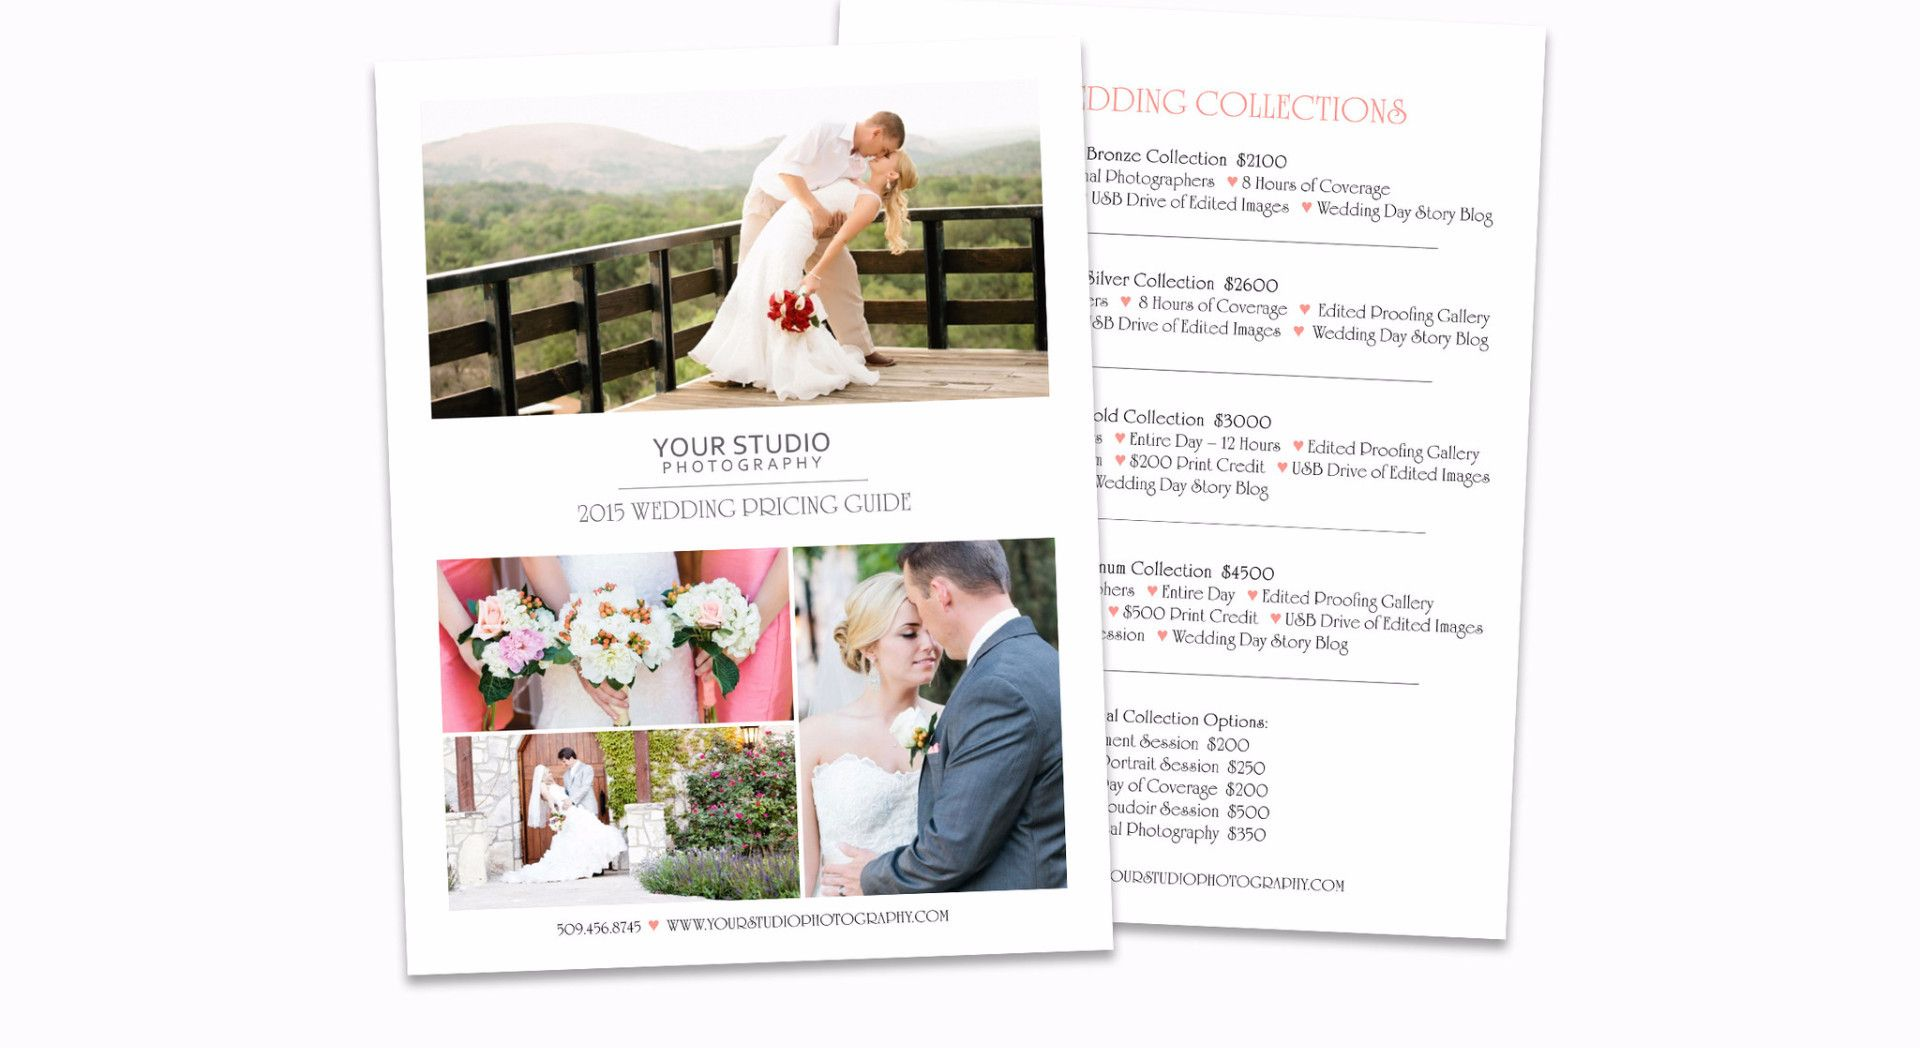 Wedding Price List Photoshop Template For Photographers From Posy